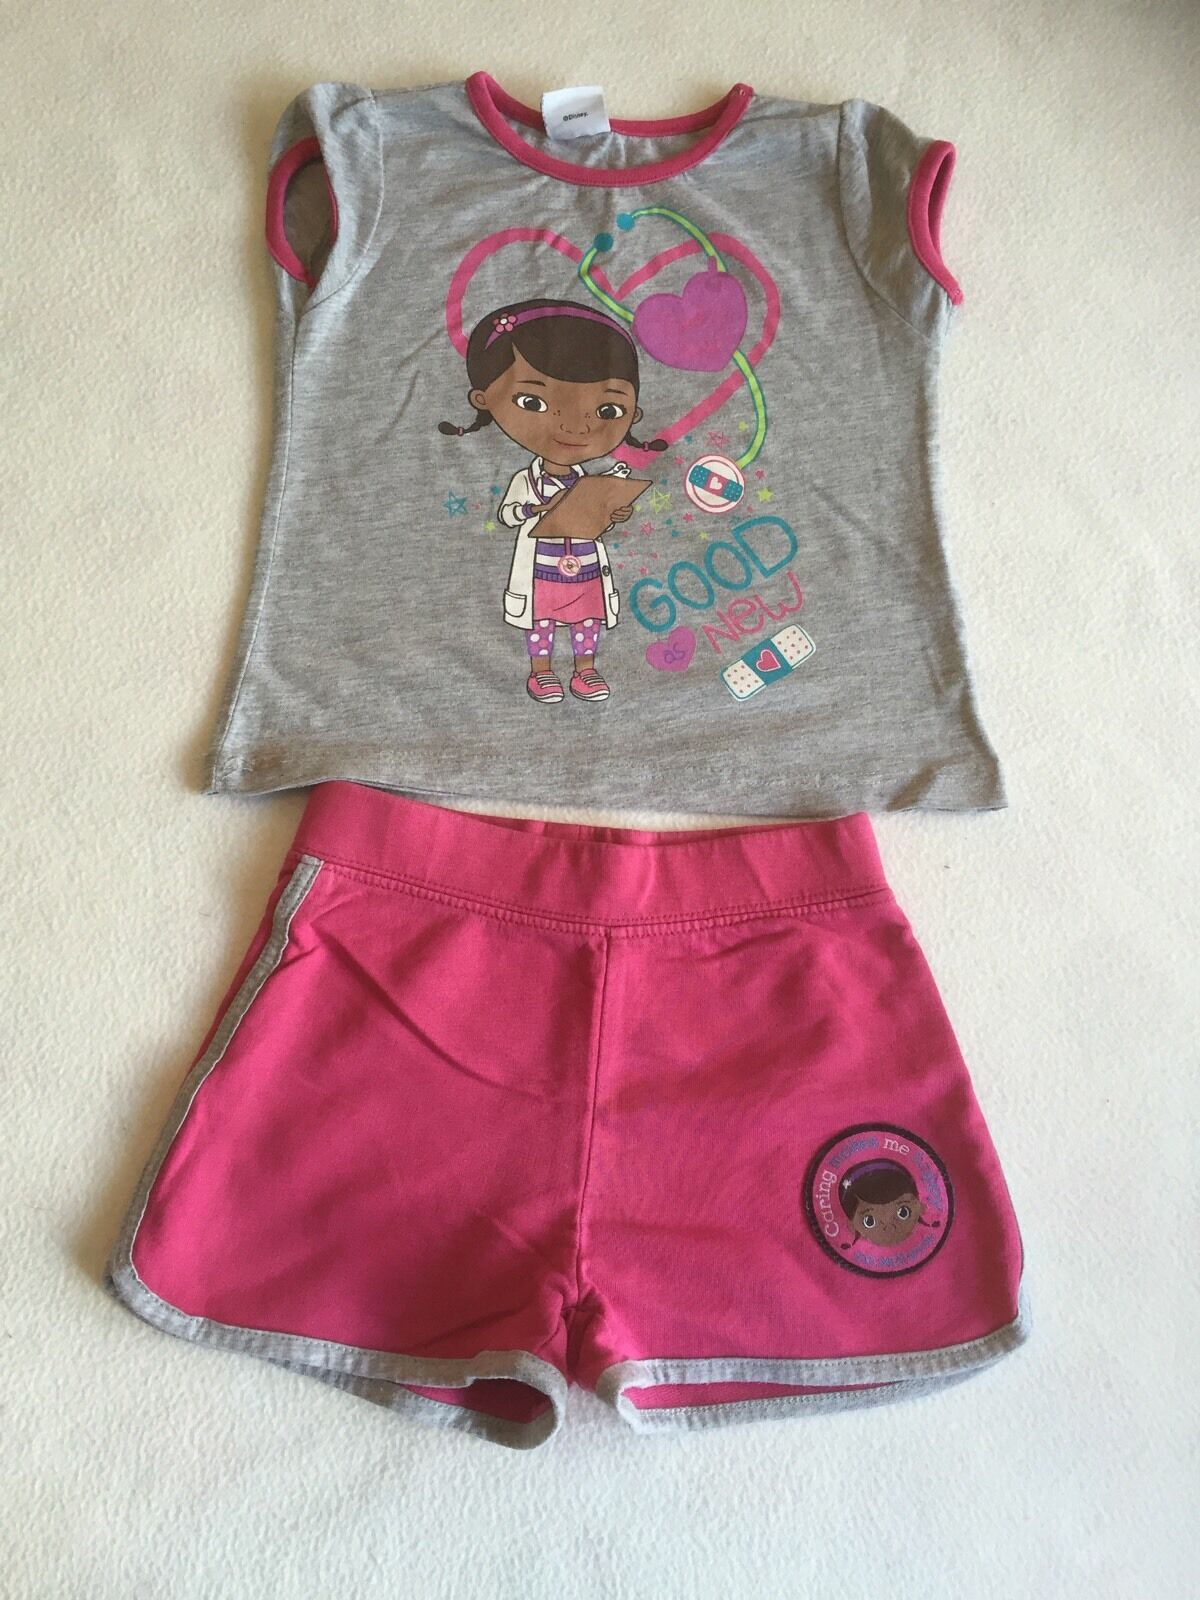 Girls Clothes 2-3 Years - Cute Doc McStuffins T Shirt Top & Shorts Outfit